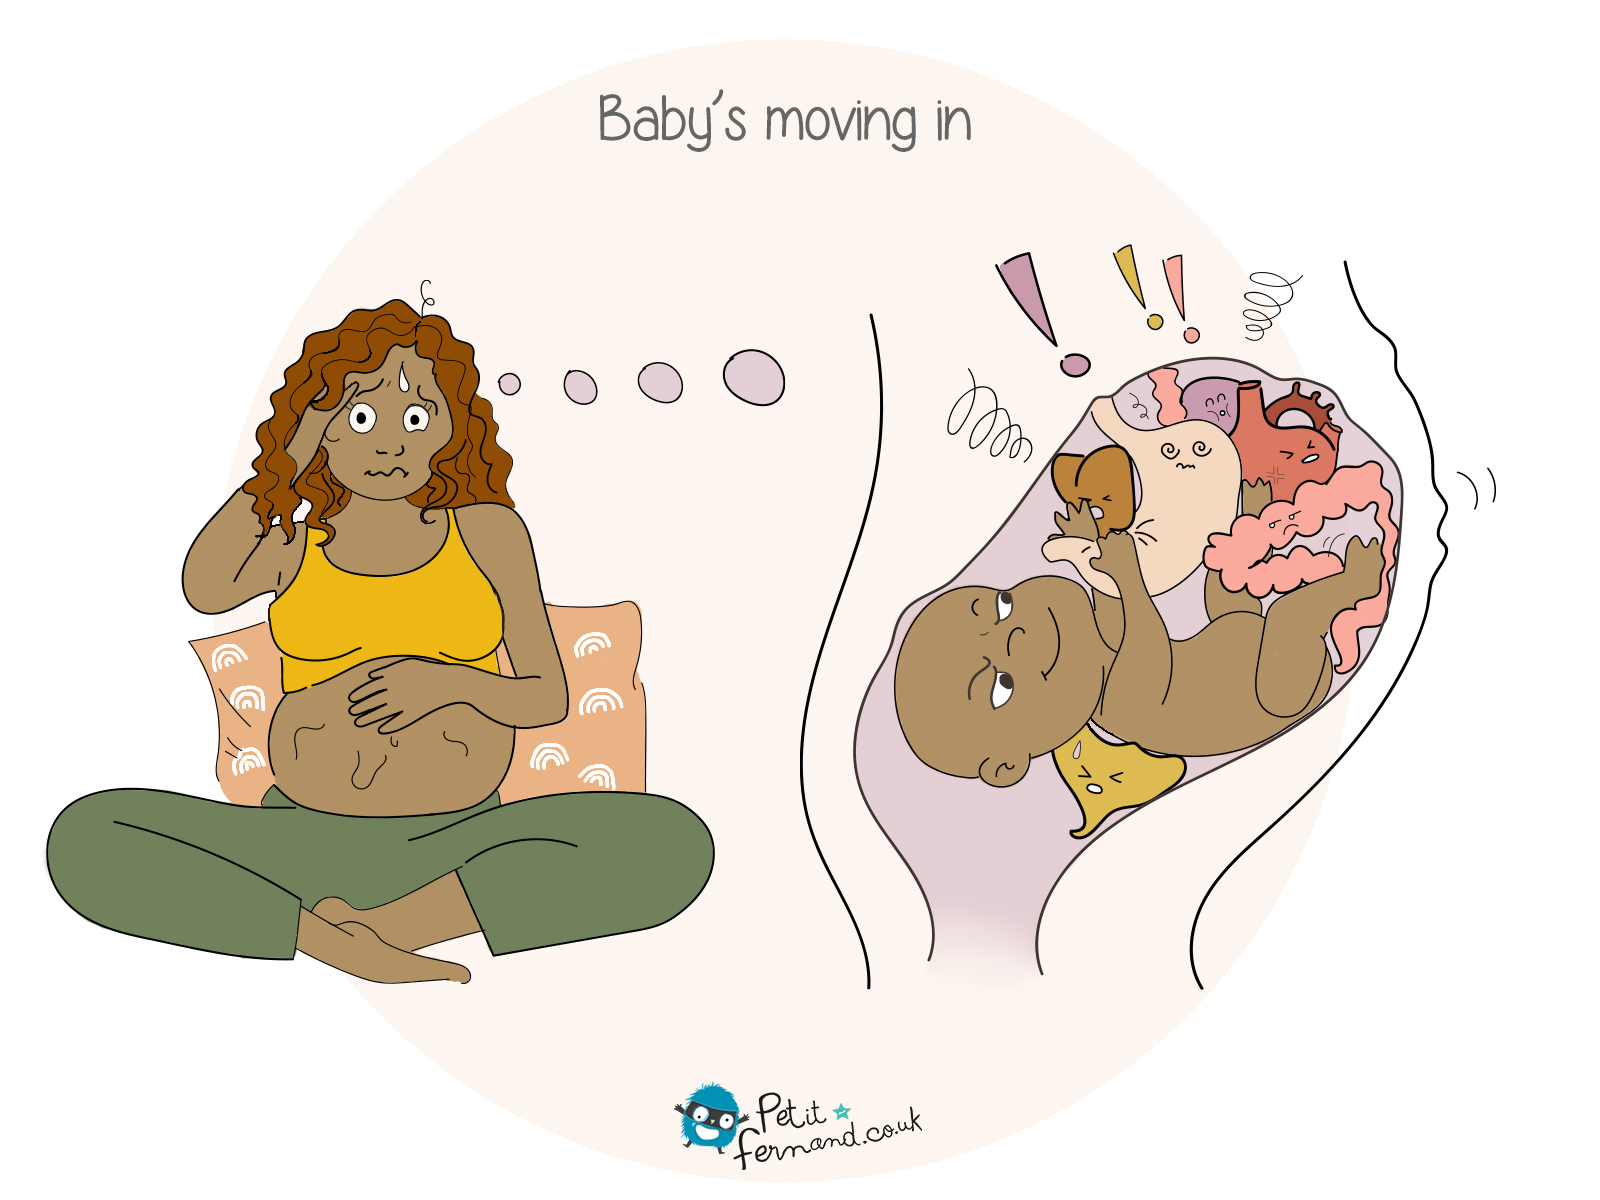 During your pregnancy, your baby moves in and your tummy becomes an entire playground!